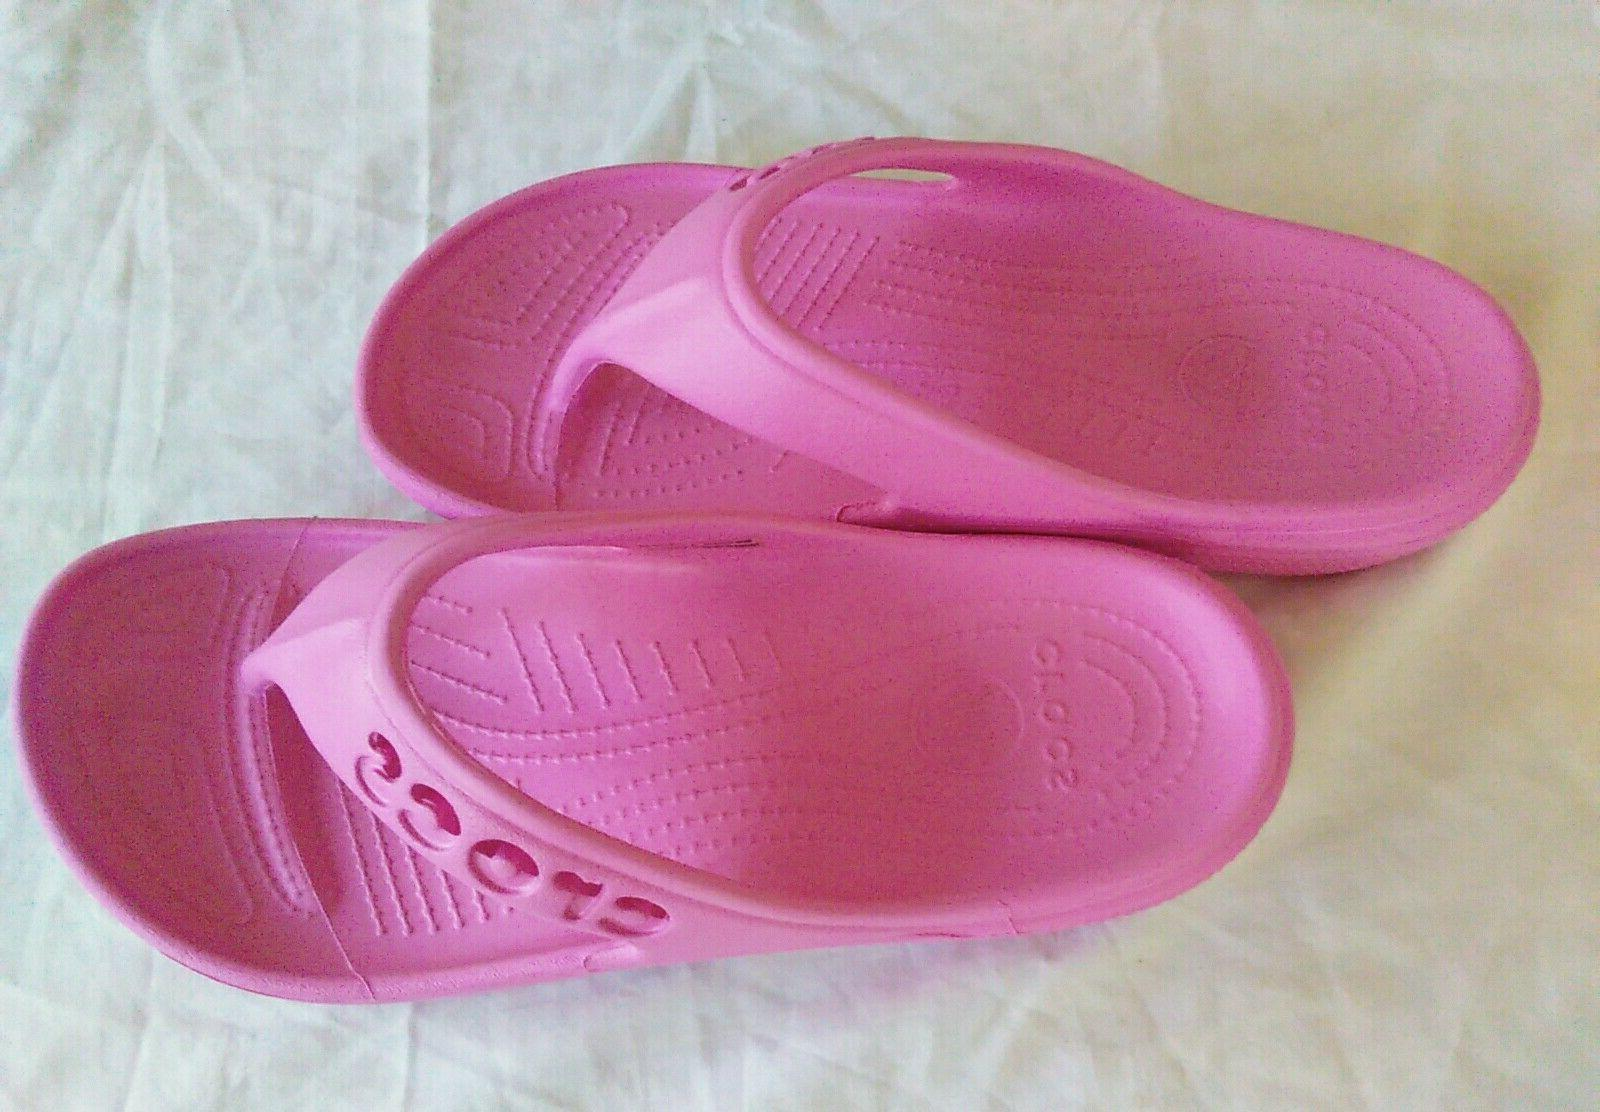 Women's Flip Flop Sandals Or Water Shoes 9. M7